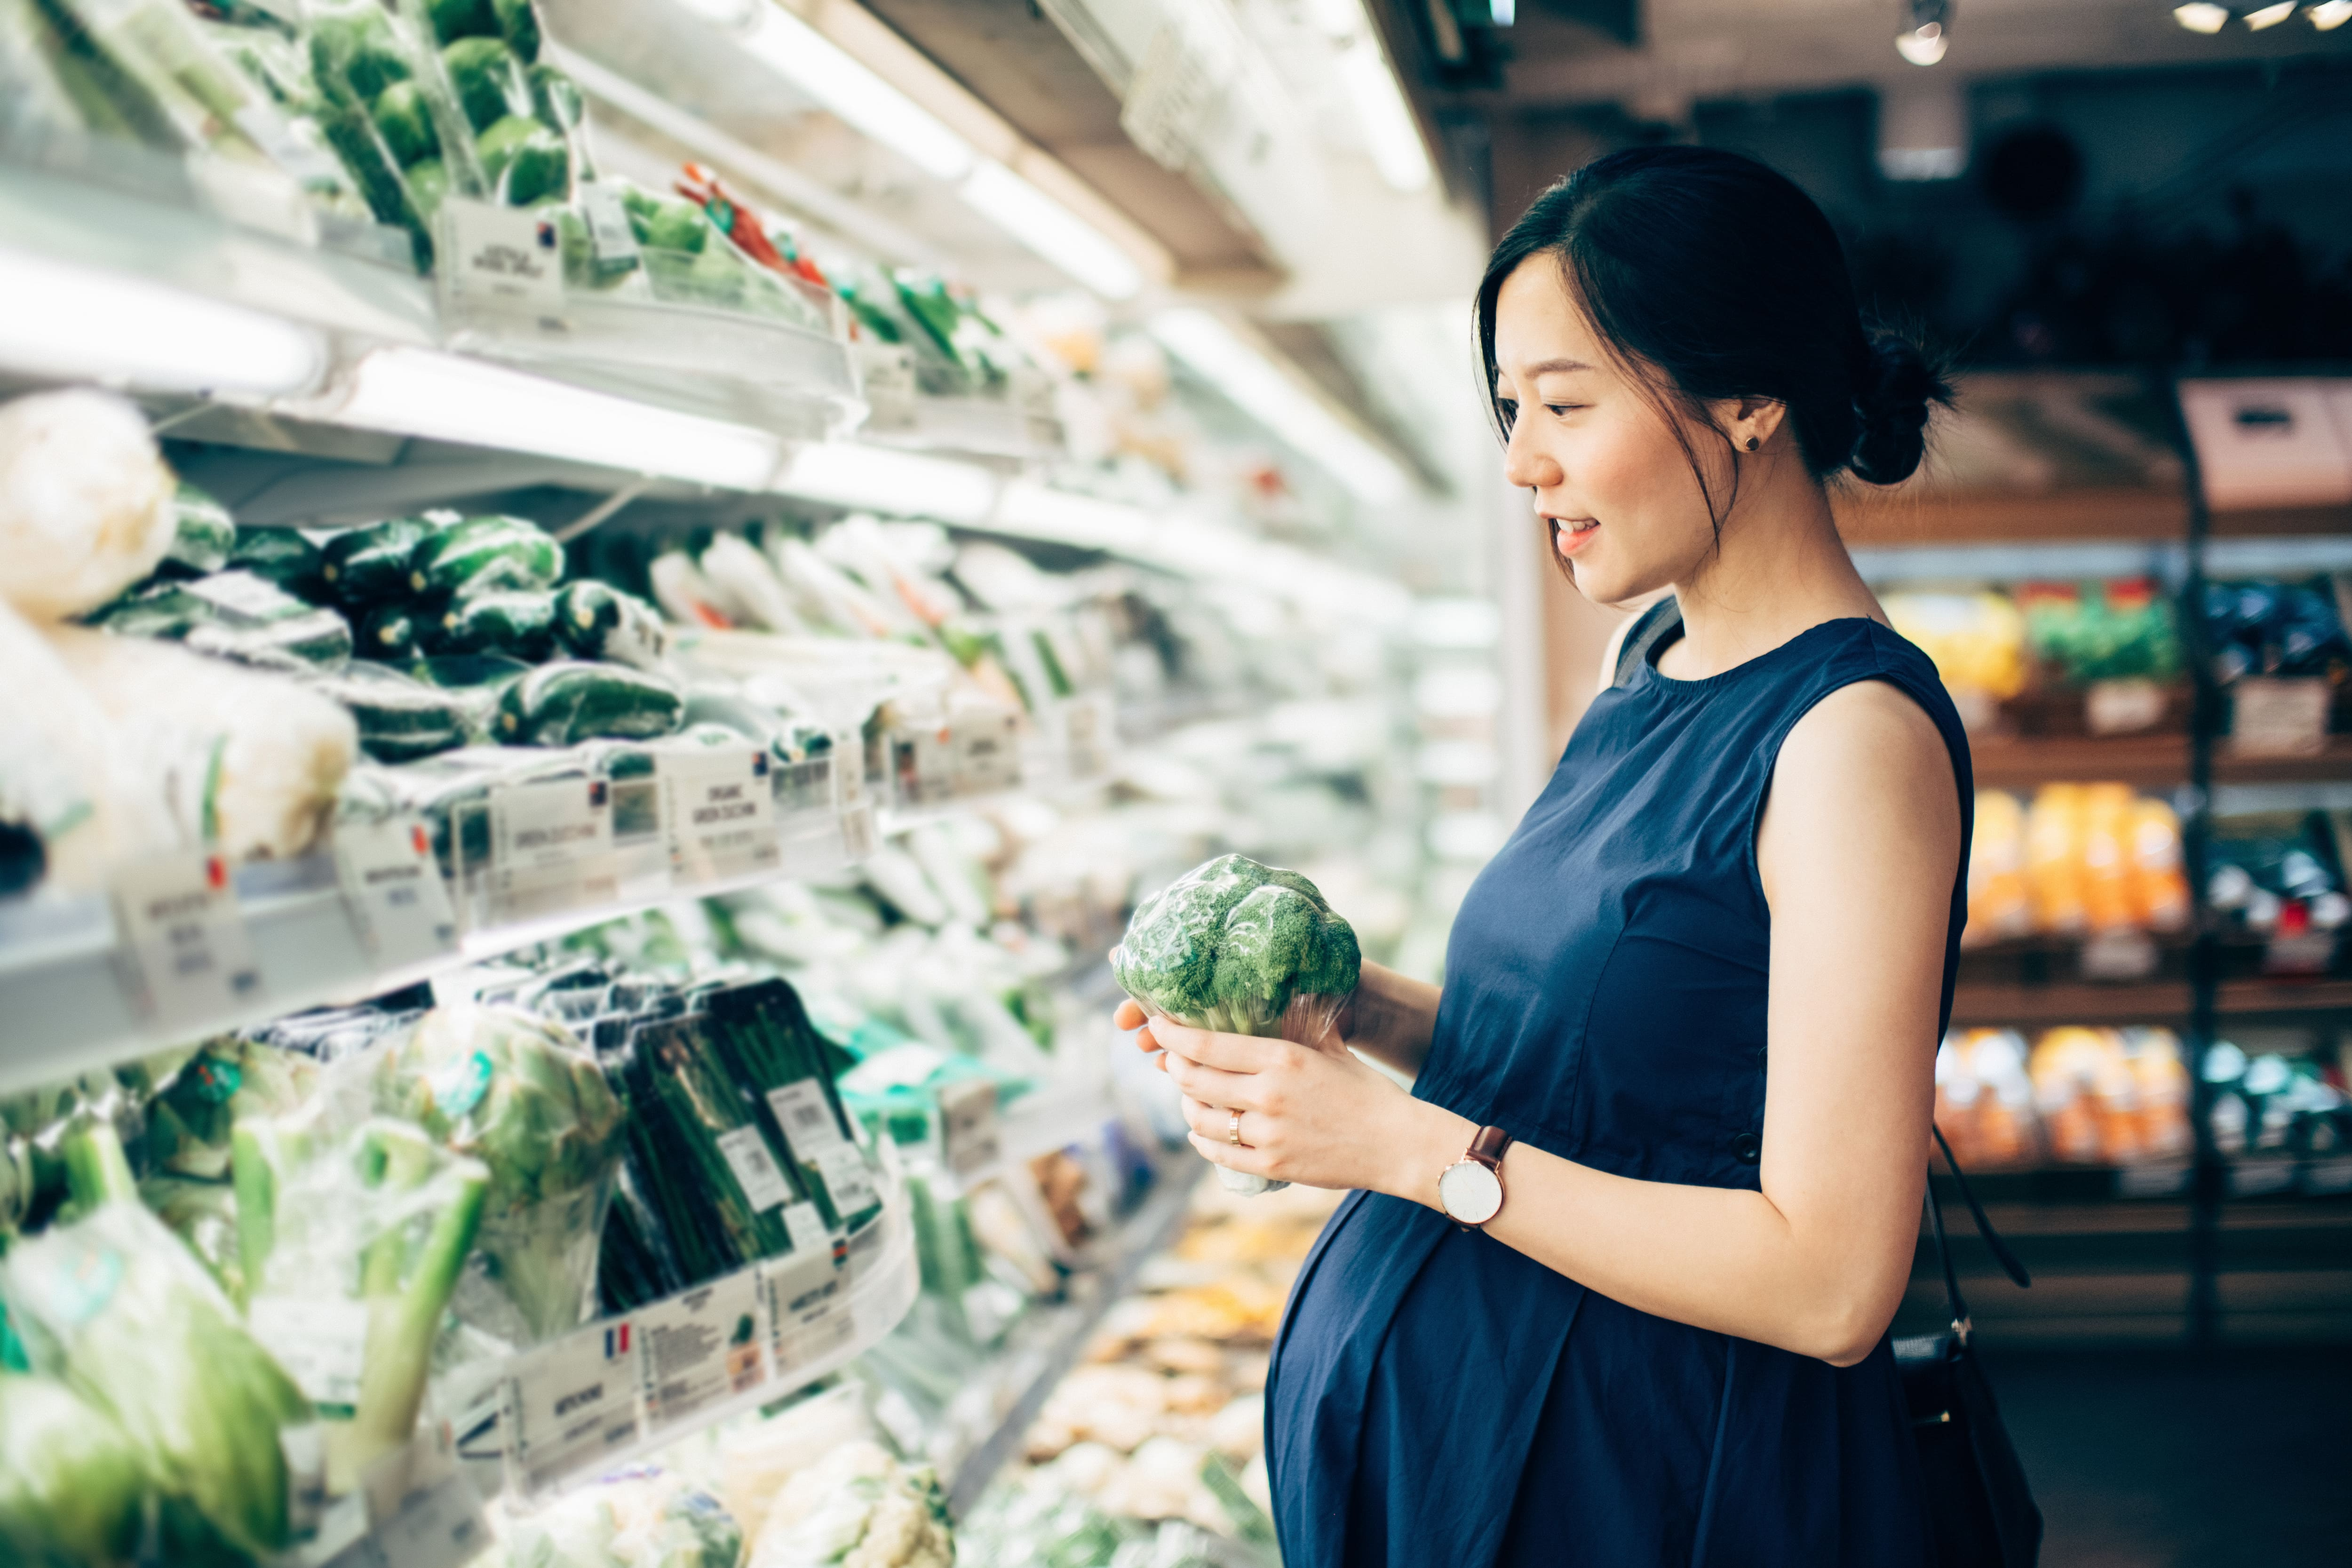 Pregnant woman grocery shopping and looking at the vegetable aisle in a supermarket